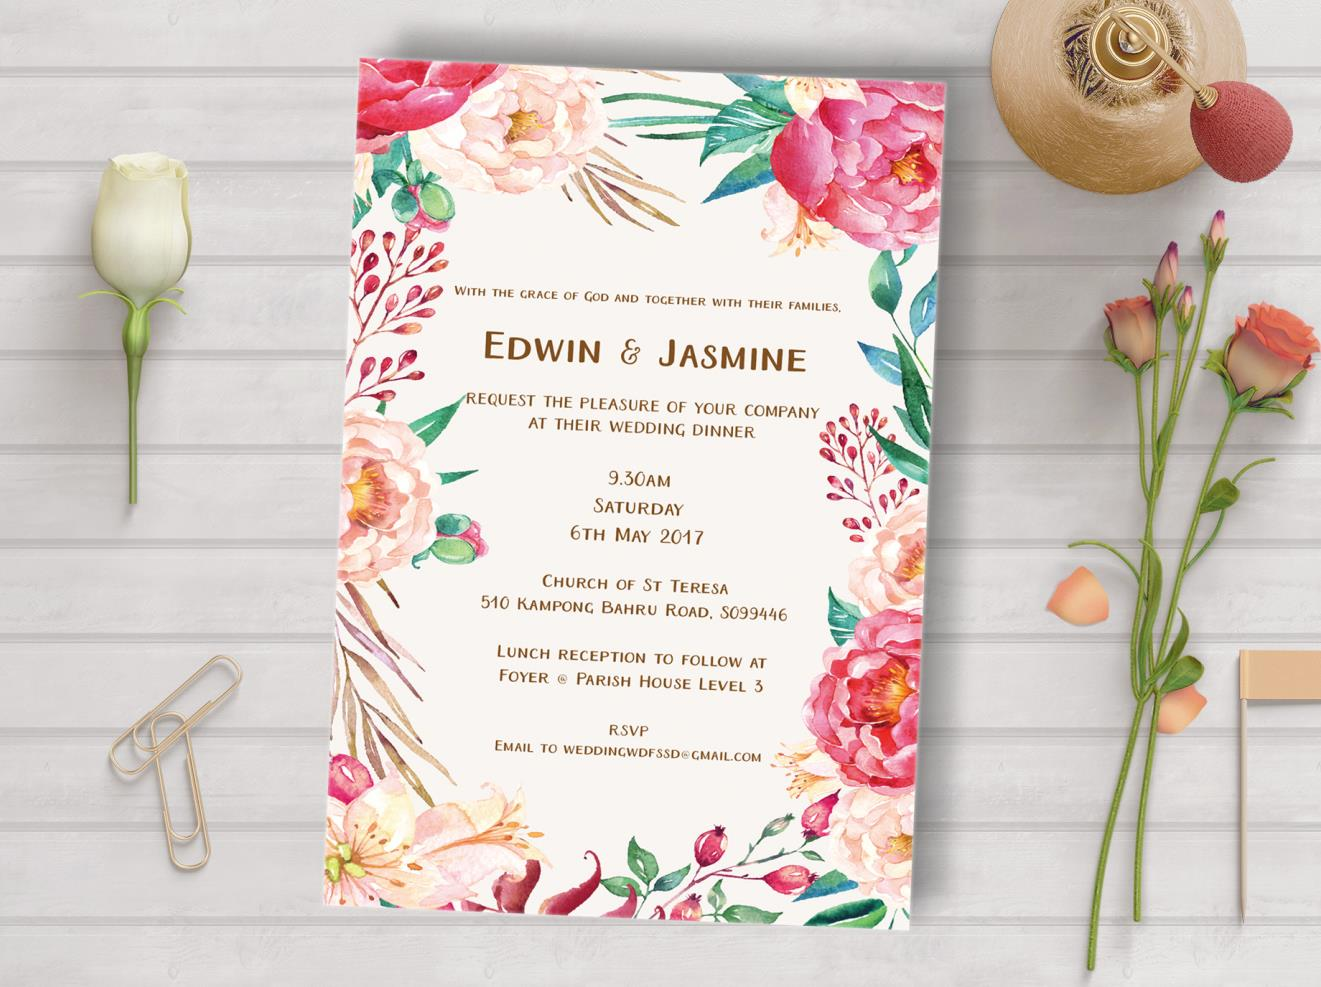 Wedding Invitation Card Sample: Wedding Invitation Wording Samples & Tips